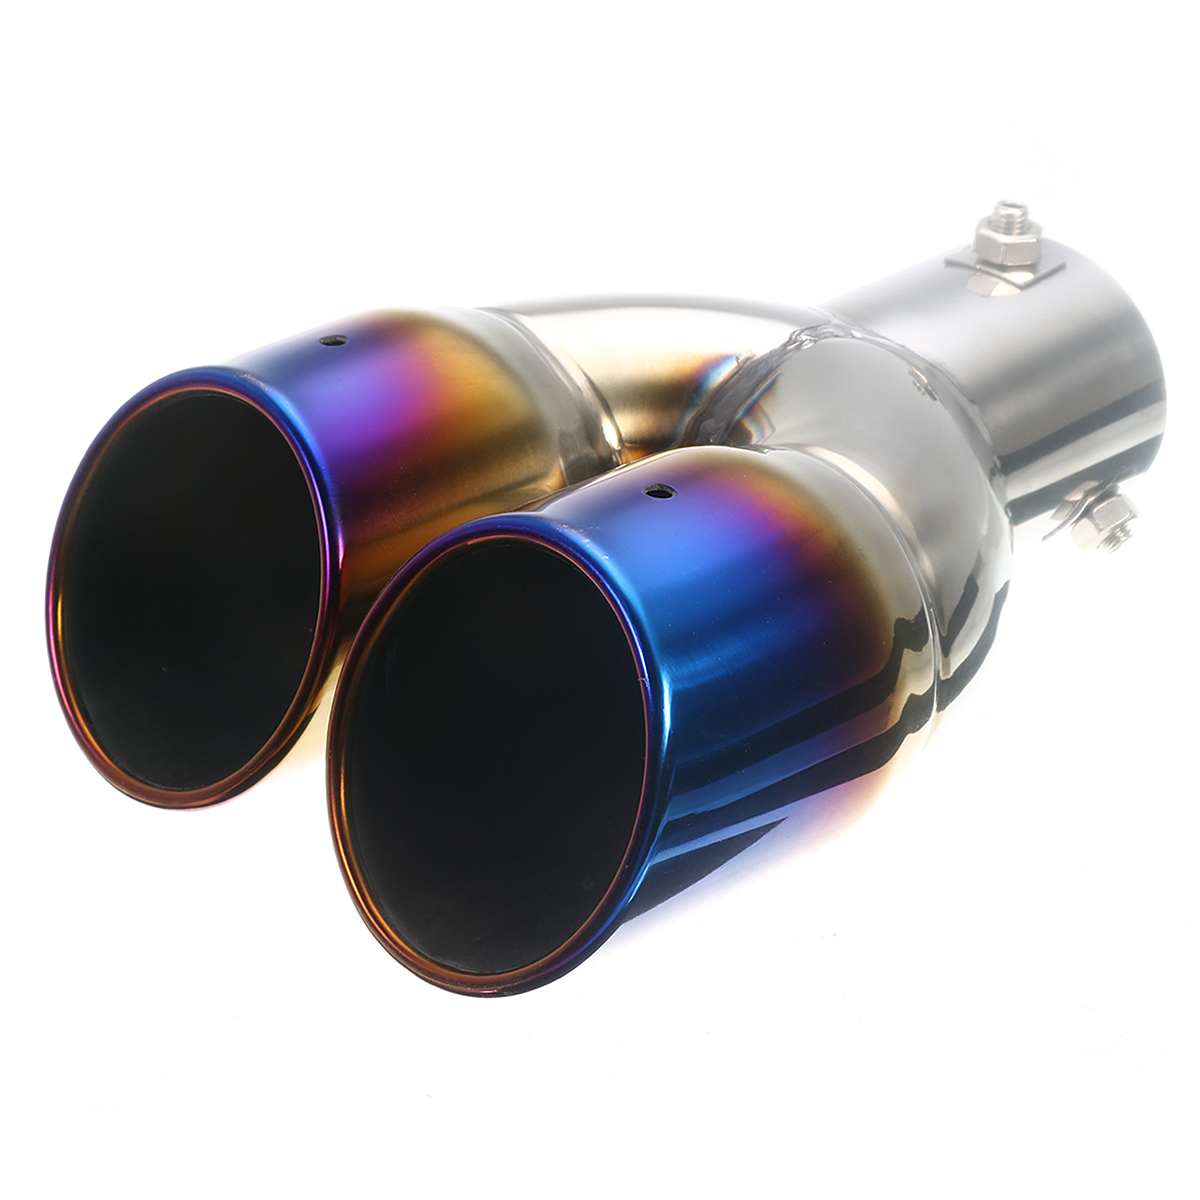 63mm Universal Black Stainless Steel Rear Exhaust Pipe Tail Muffler Tip Cover